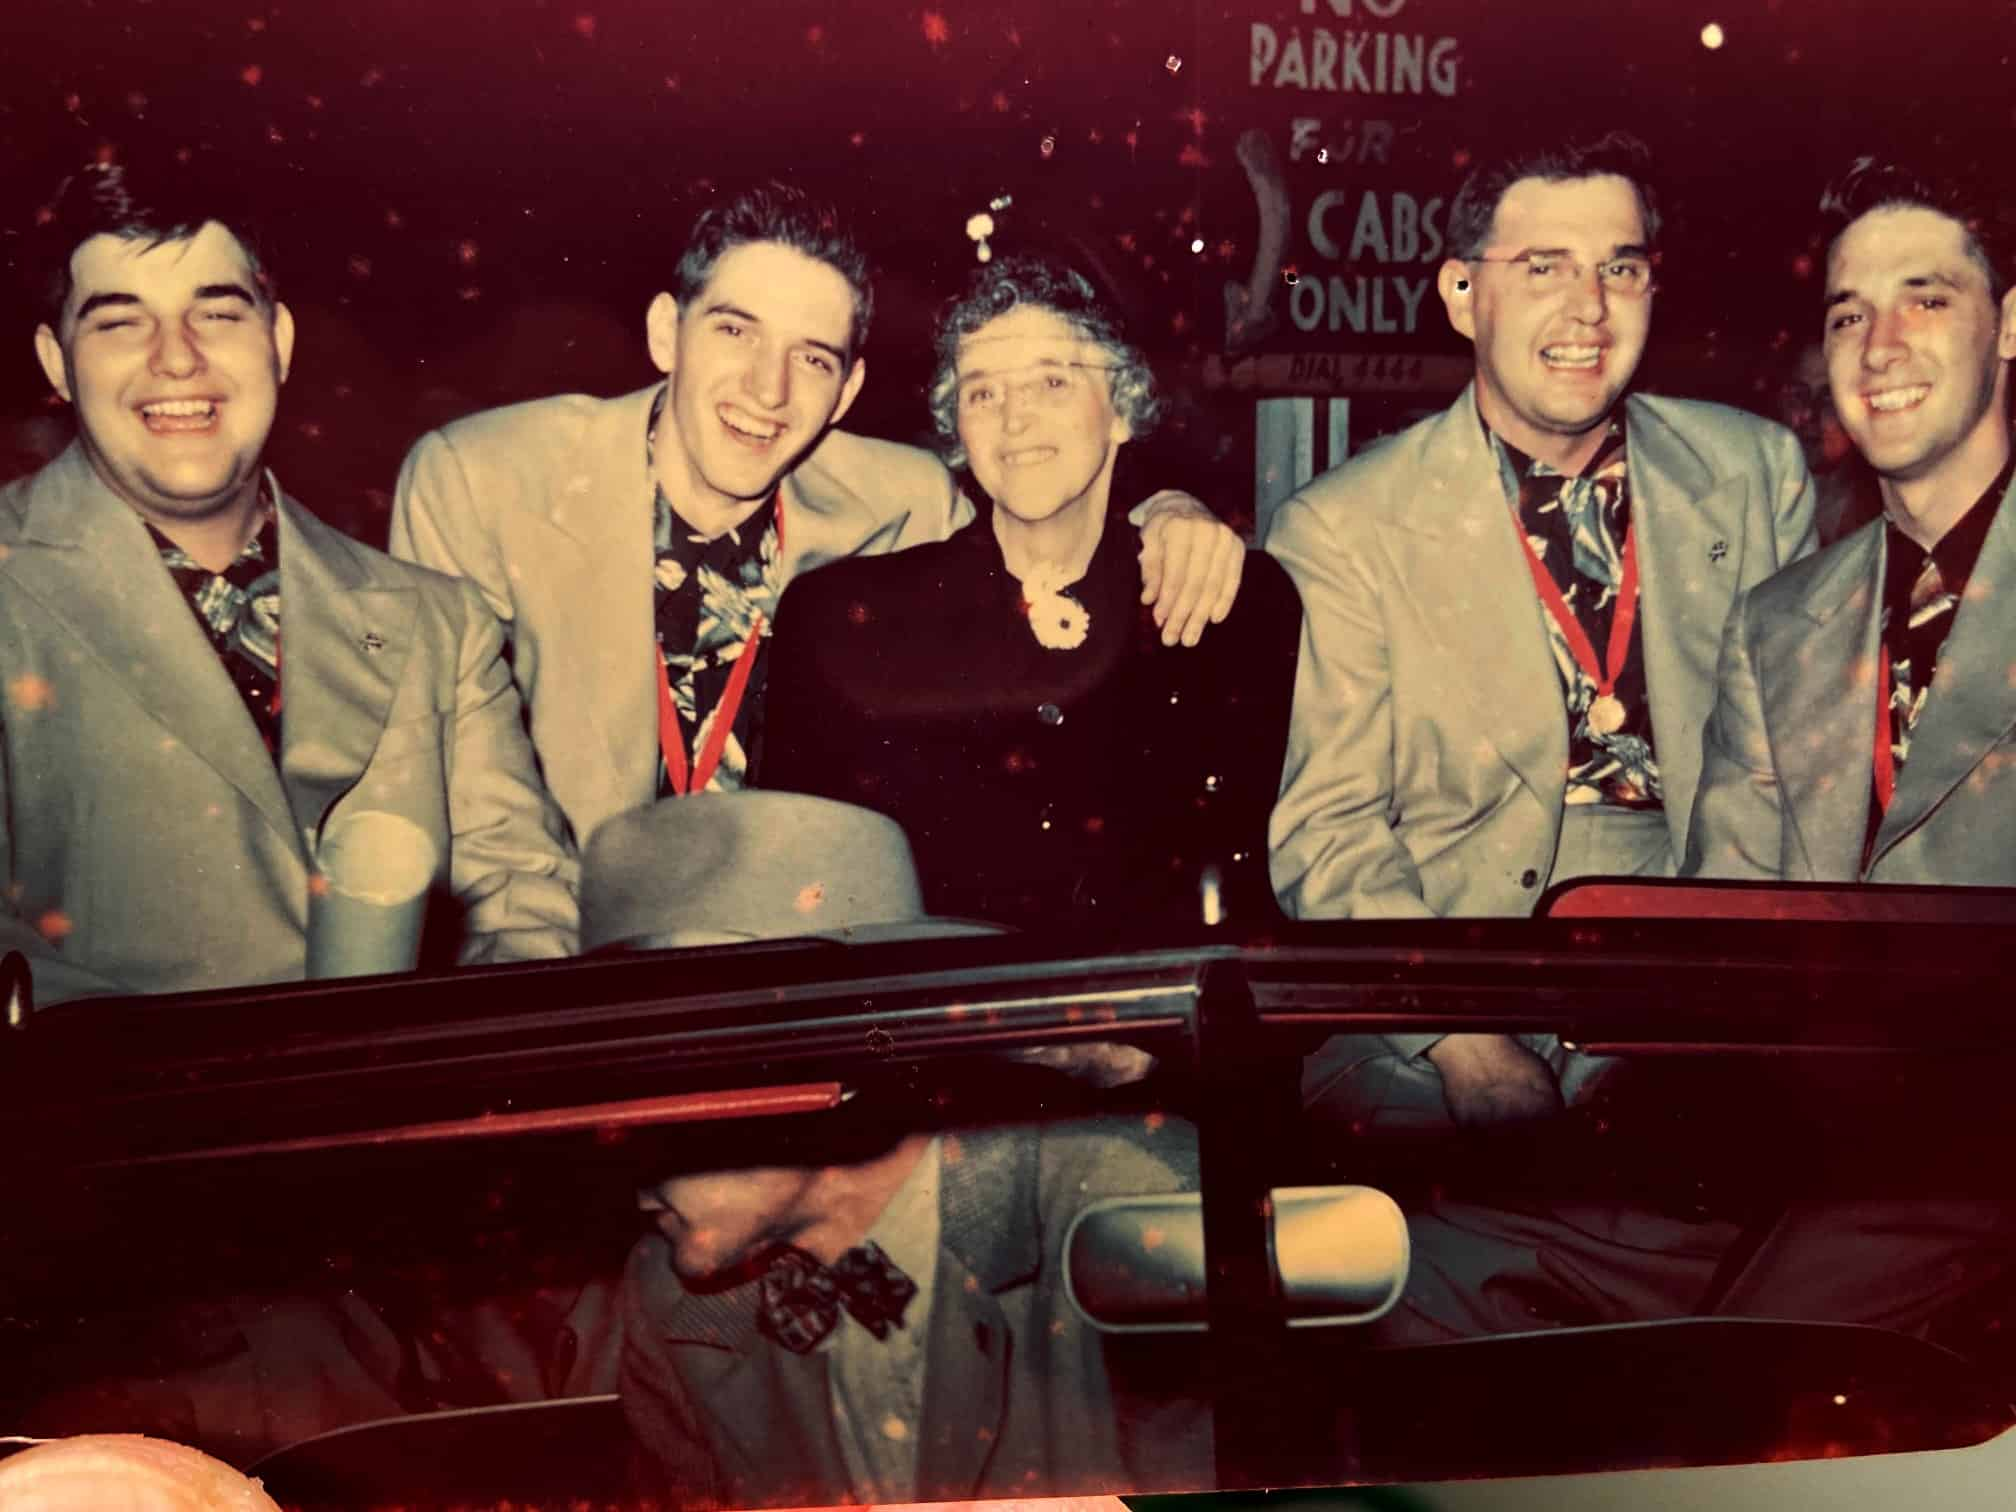 The Schmitt brothers' homecoming in 1951